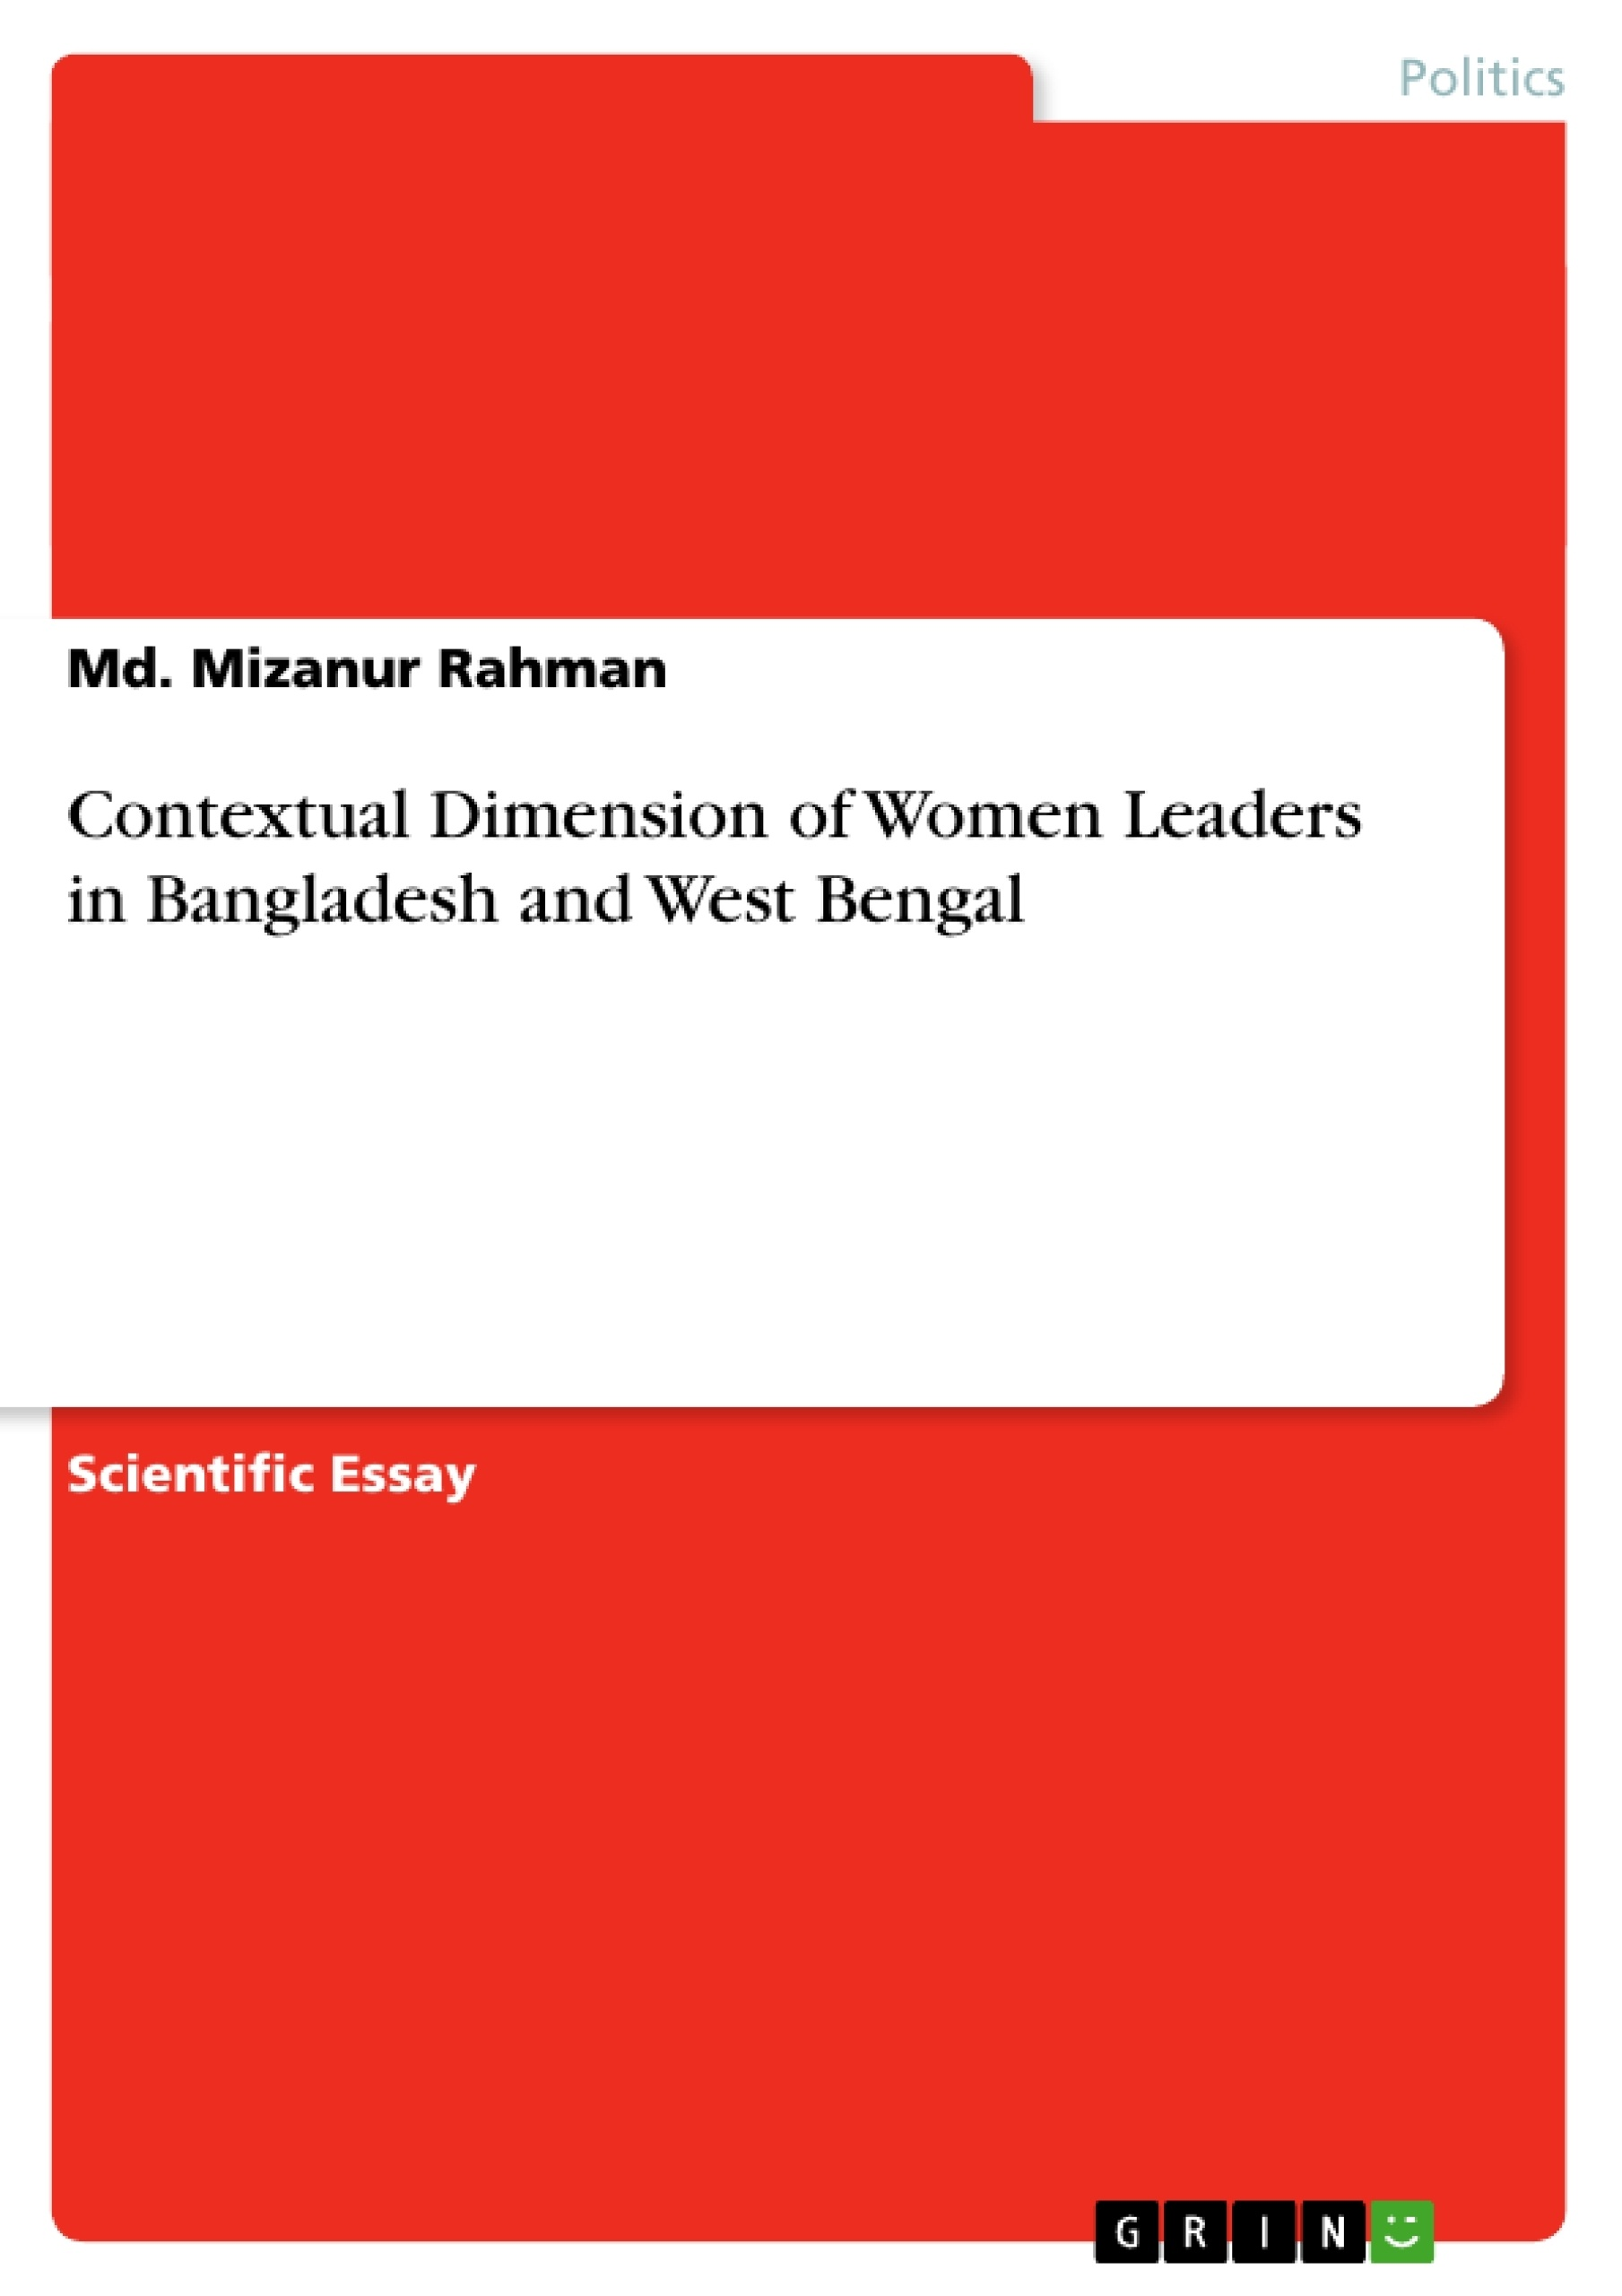 Title: Contextual Dimension of Women Leaders in Bangladesh and West Bengal